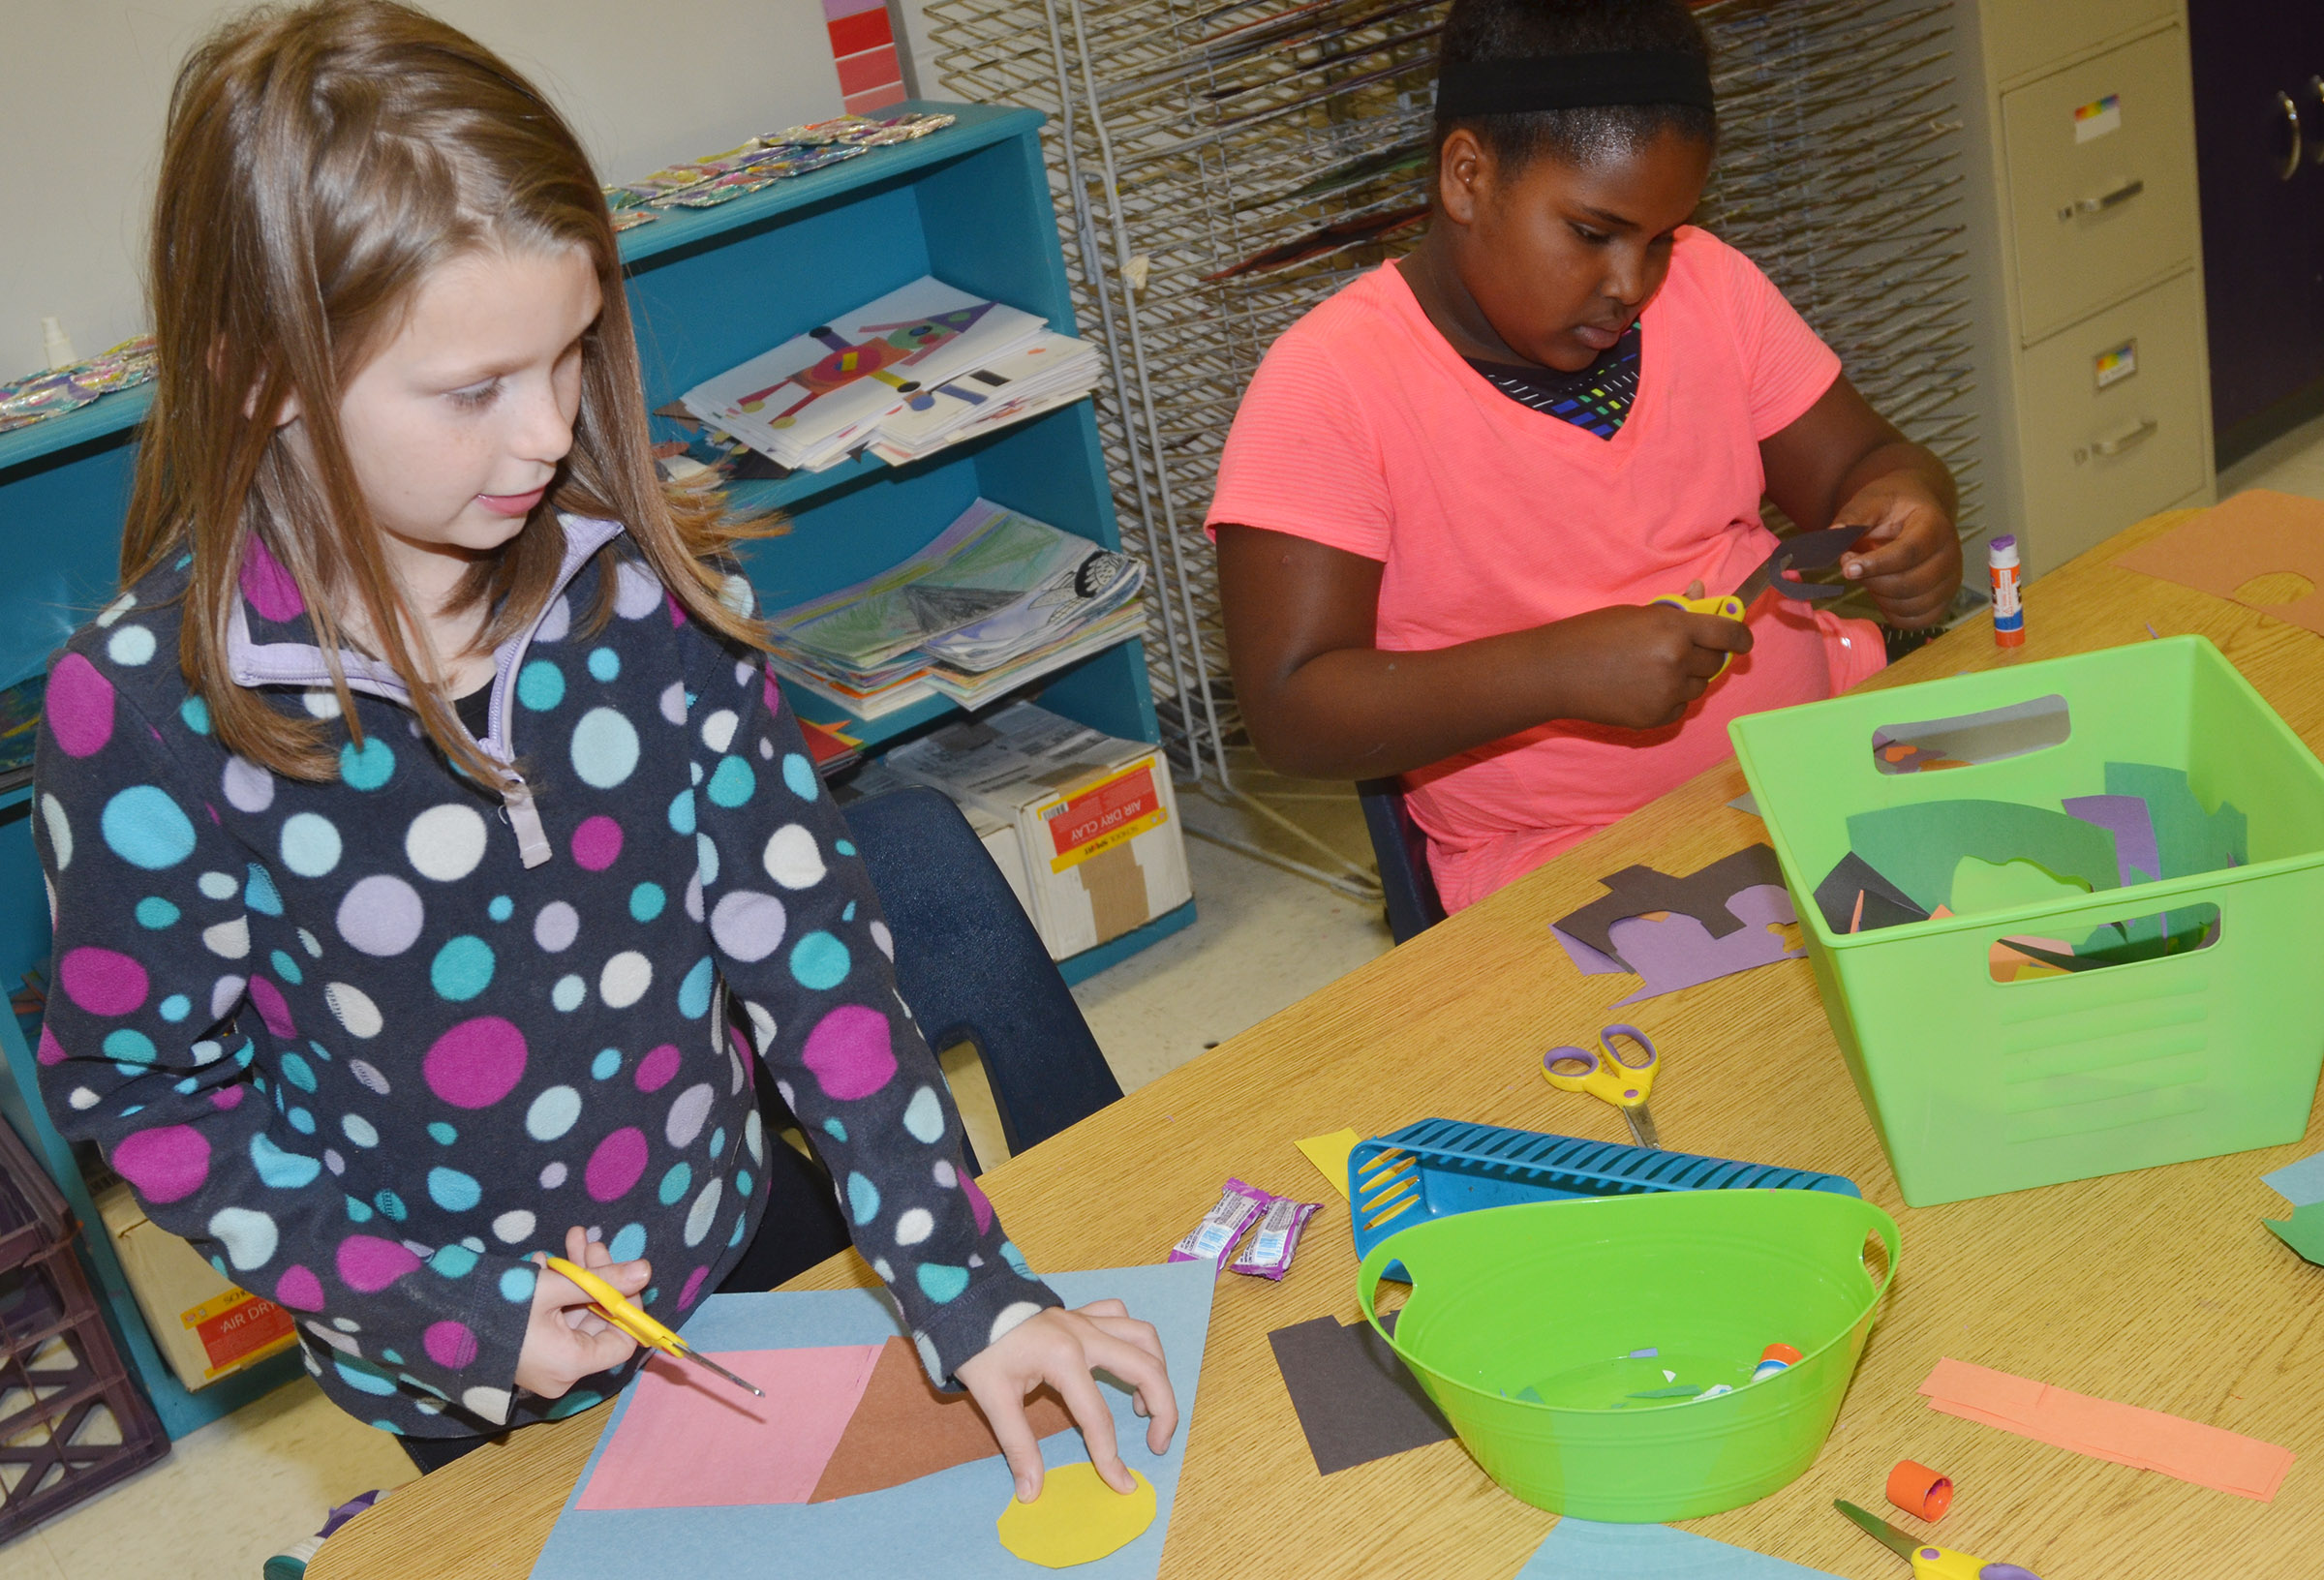 CES third-graders Sammantha Wooley, at left, and Ajada Smith cut out construction paper as they create their drawings.